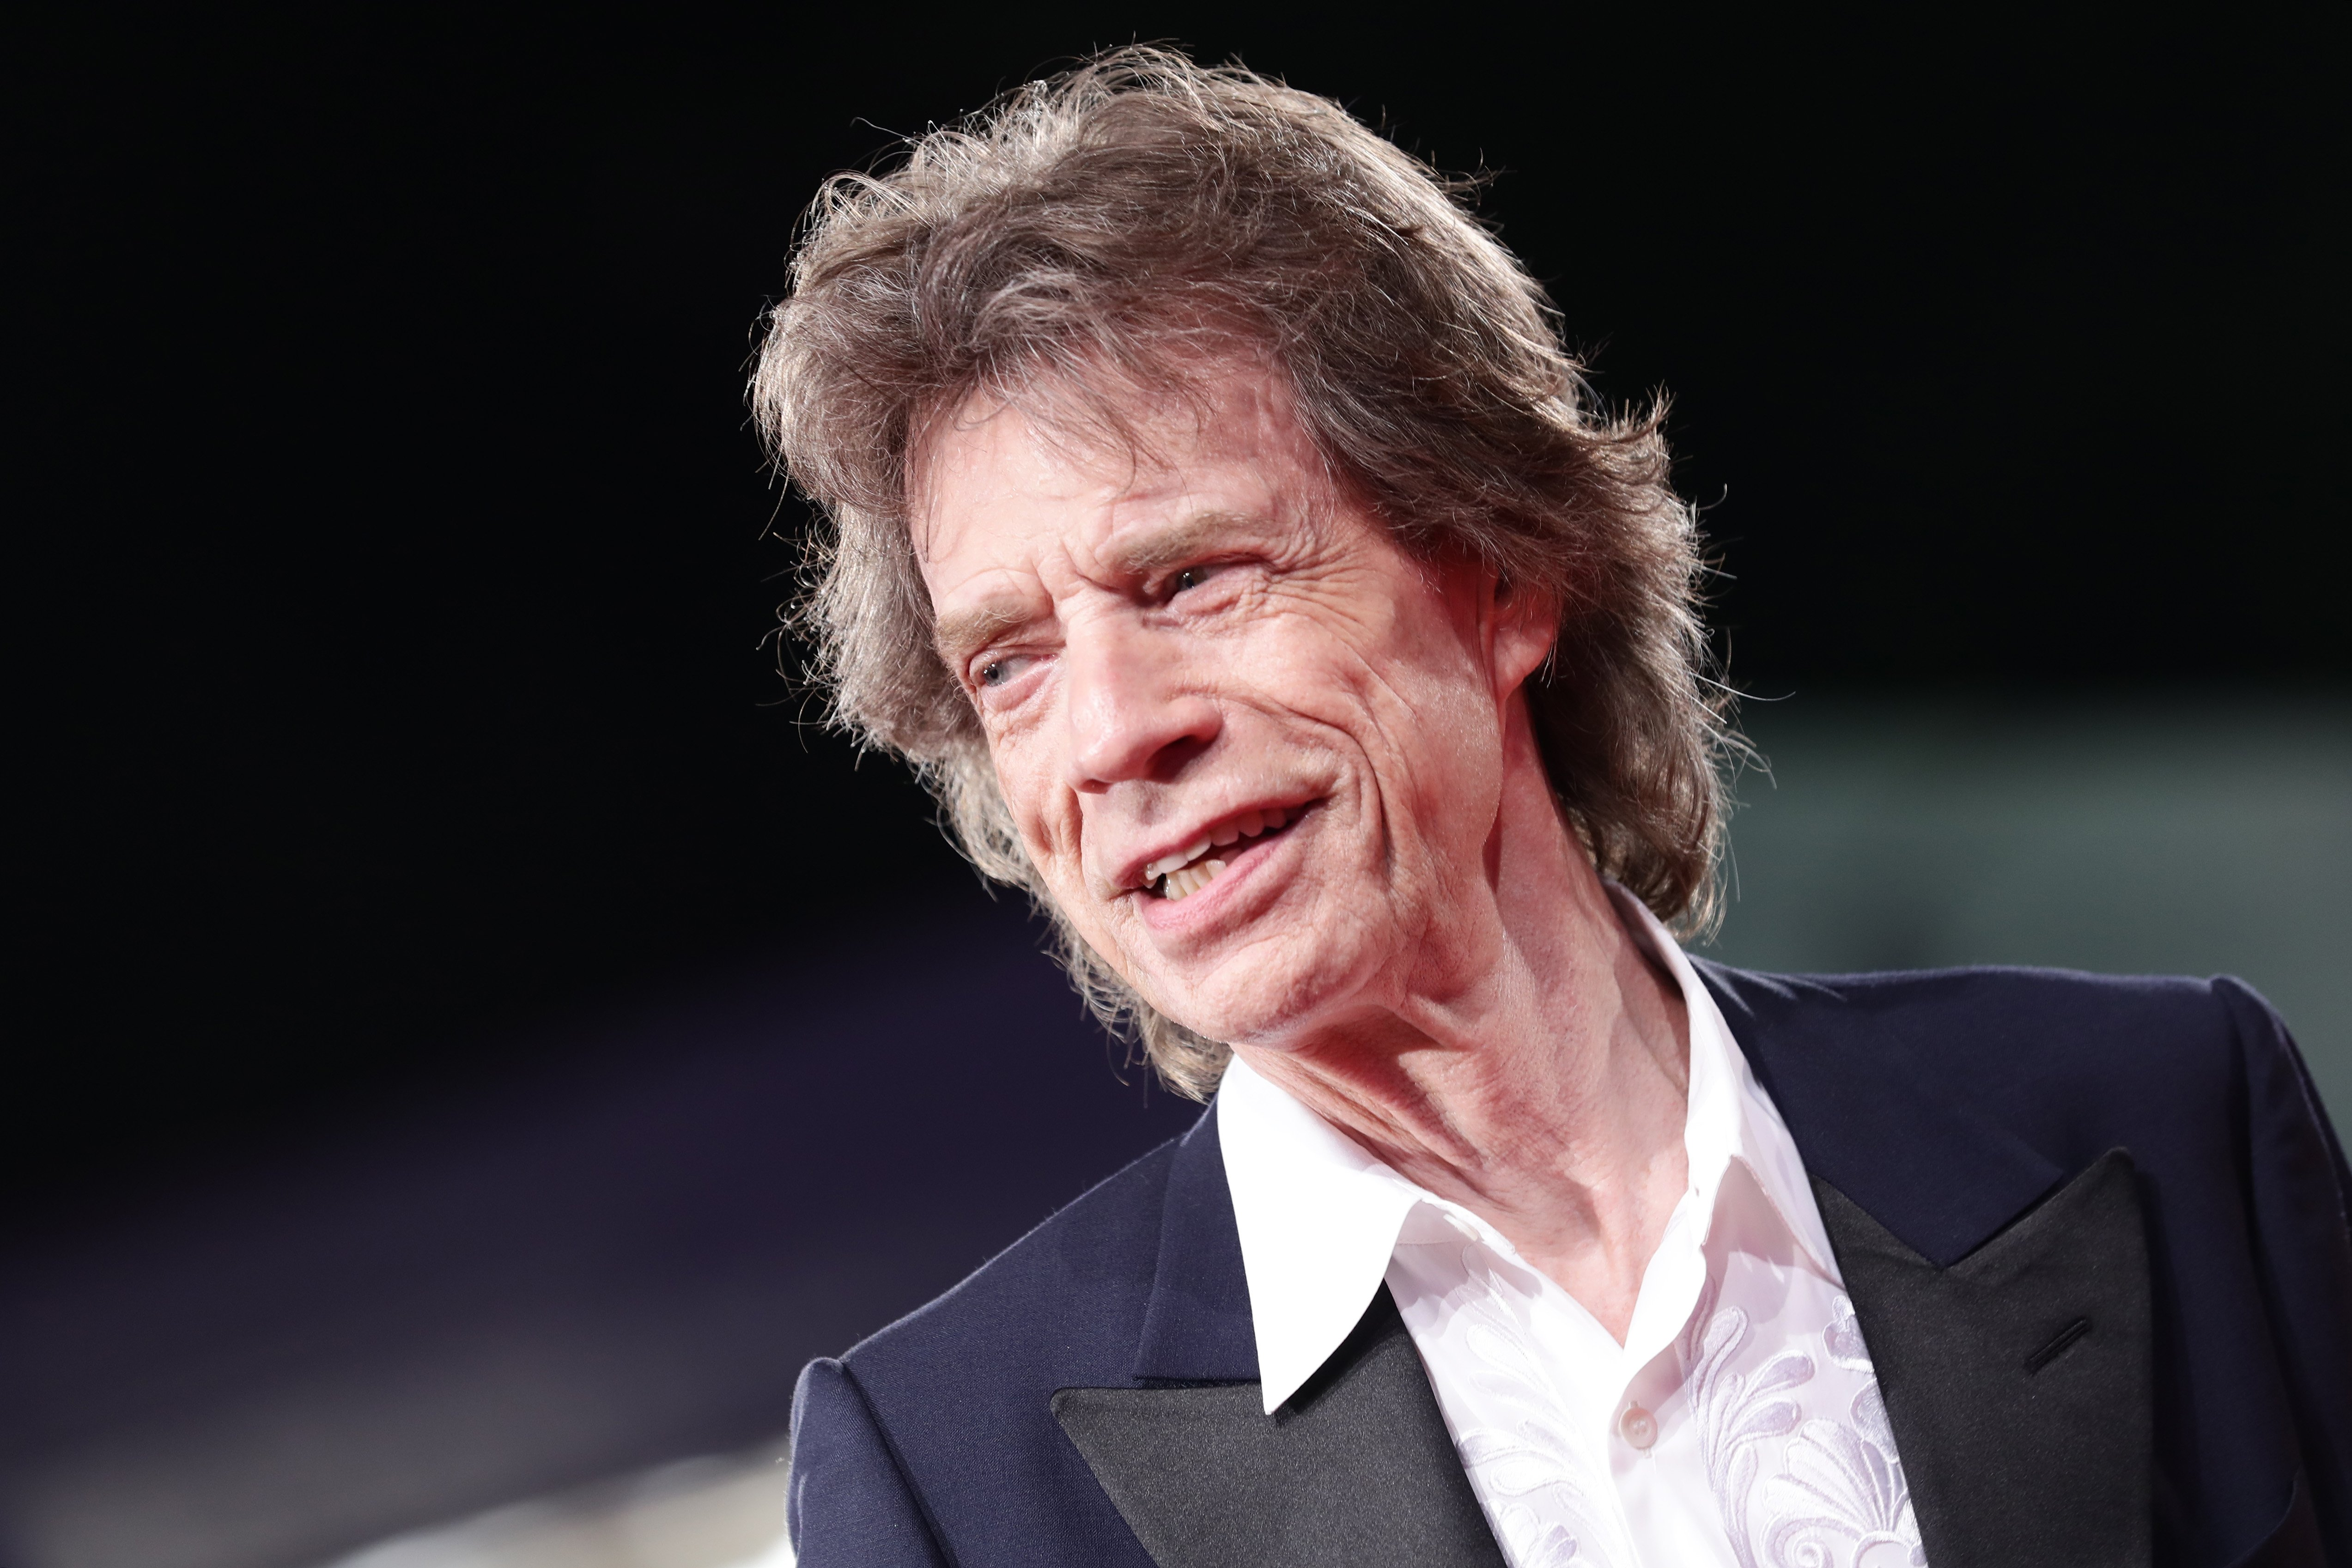 Mick Jagger at the 76th Venice Film Festival at Sala Grande on September 07, 2019 in Venice, Italy | Photo: Getty Images